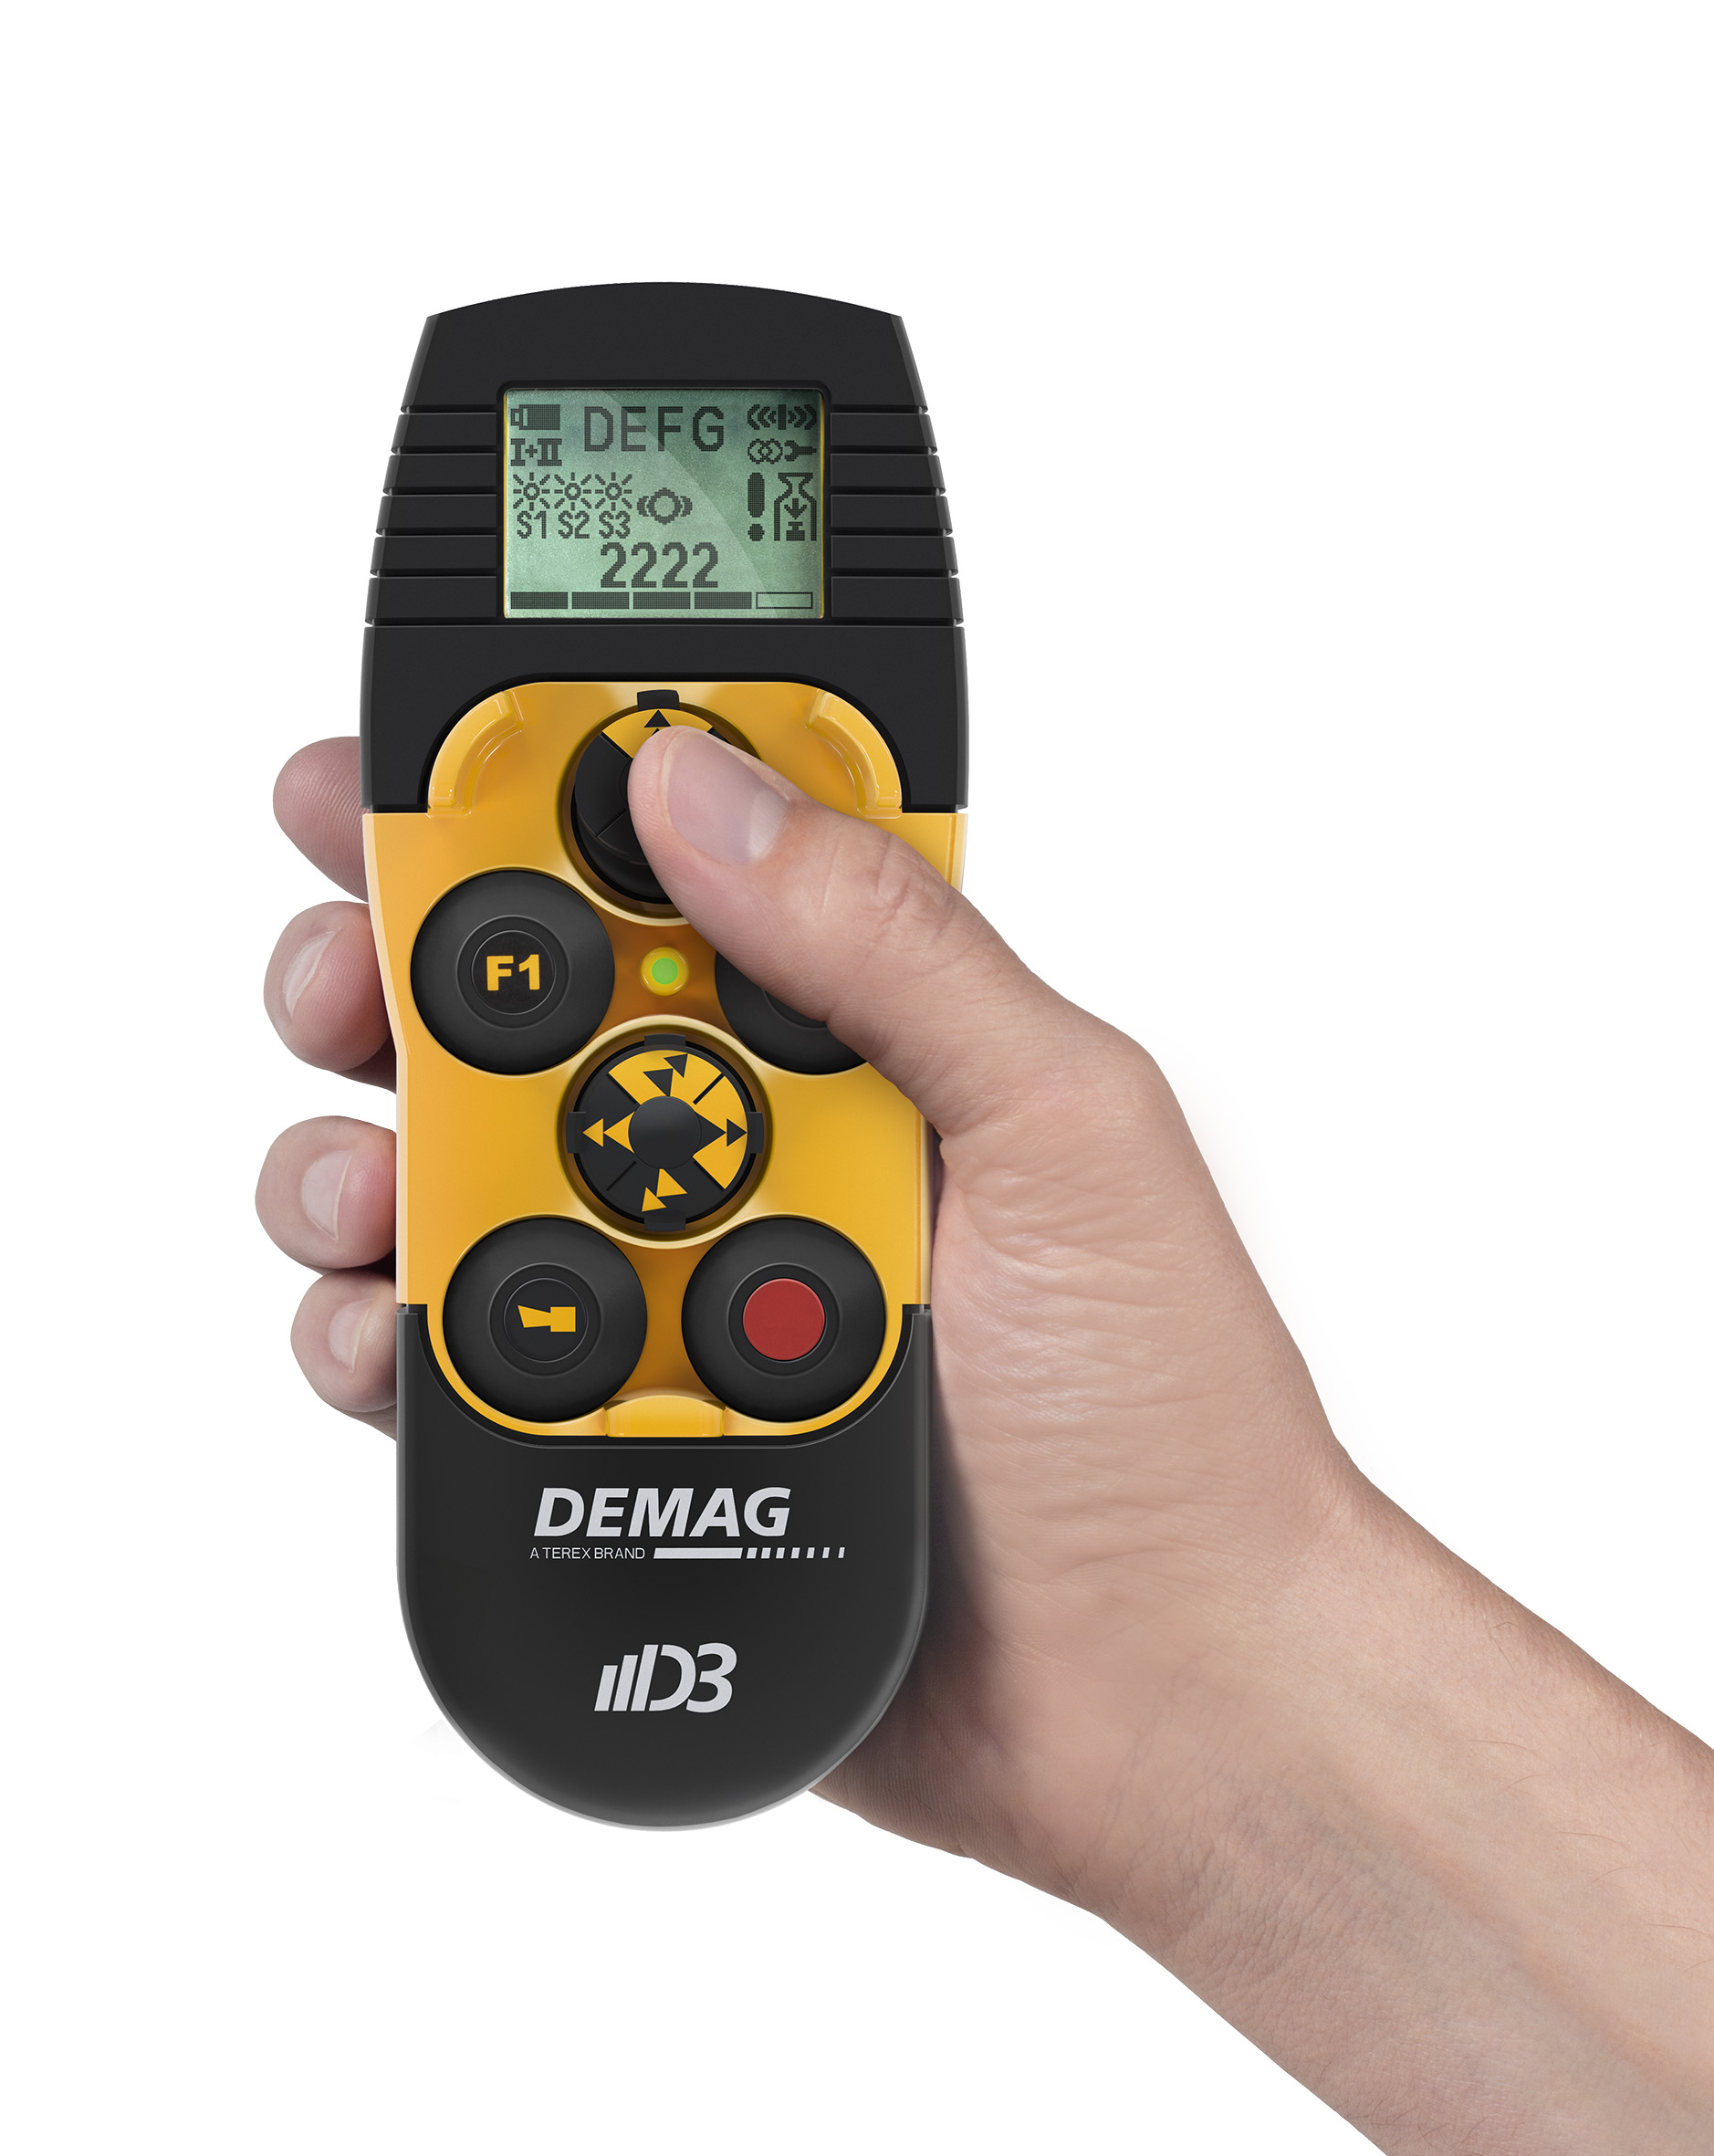 New Demag crane radio control system with mini joysticks